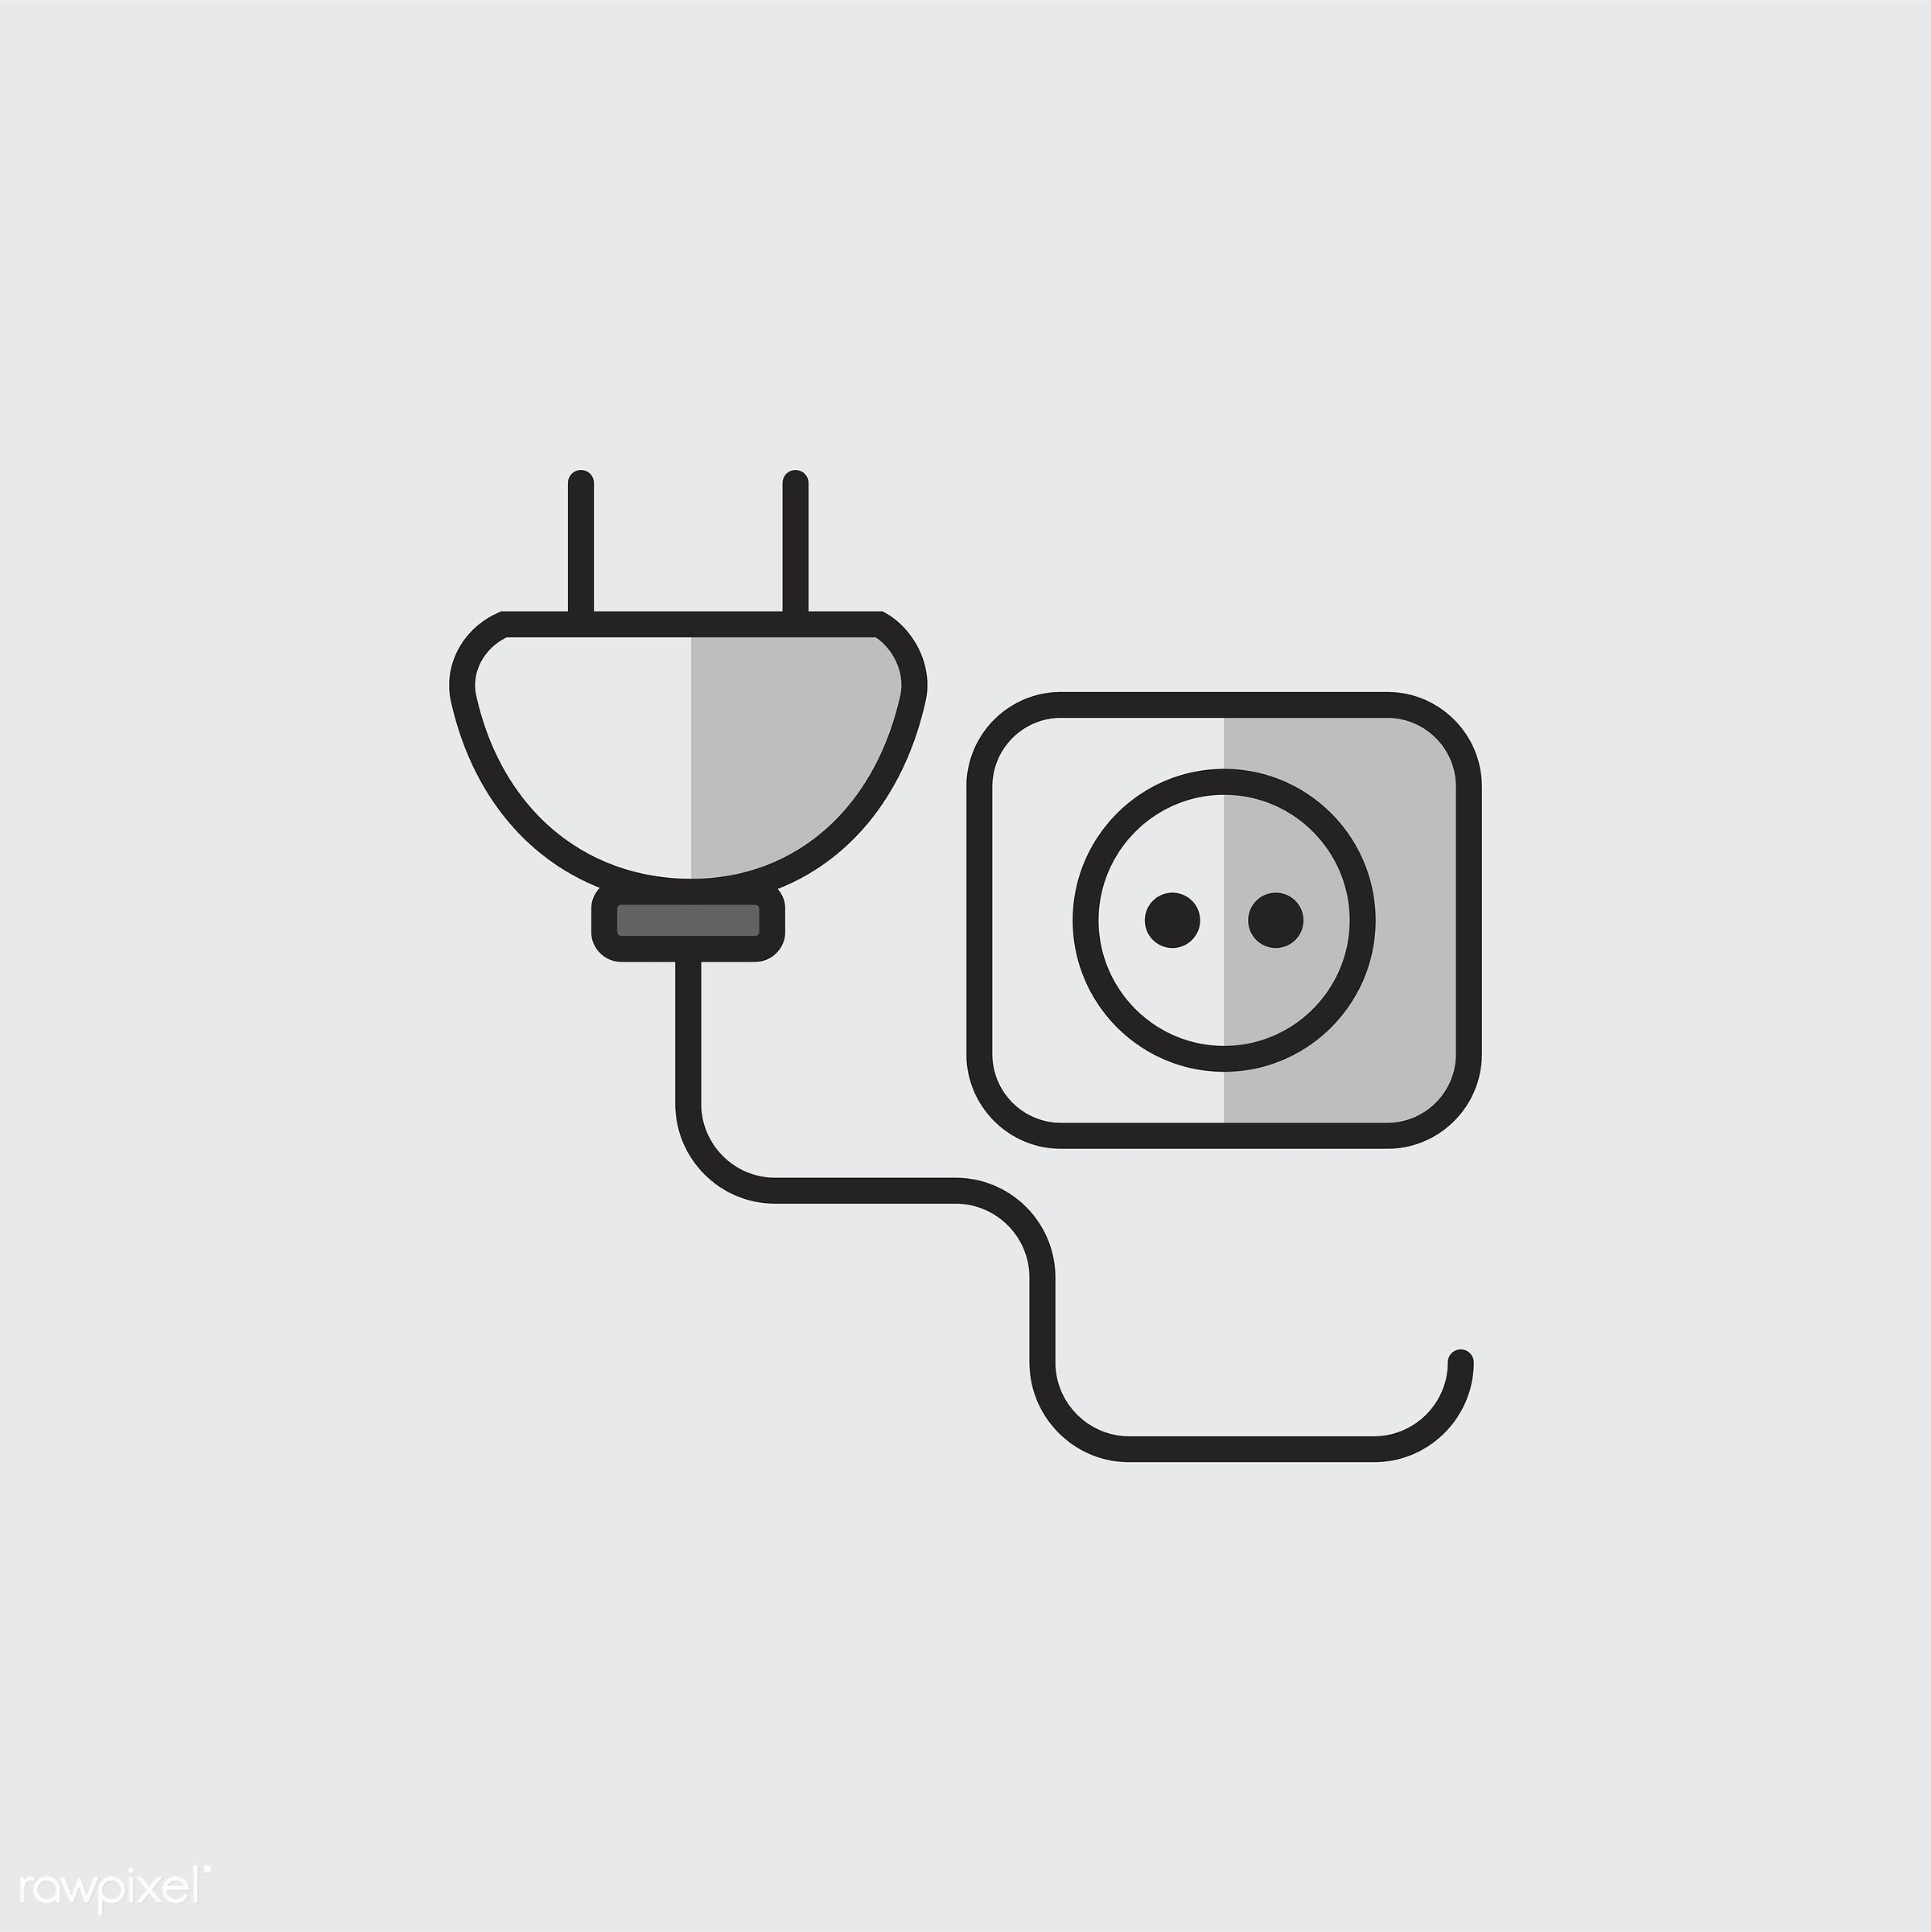 Illustration of power plug and socket - biology, chemistry, class, design, education, electric, electrical, electricity,...